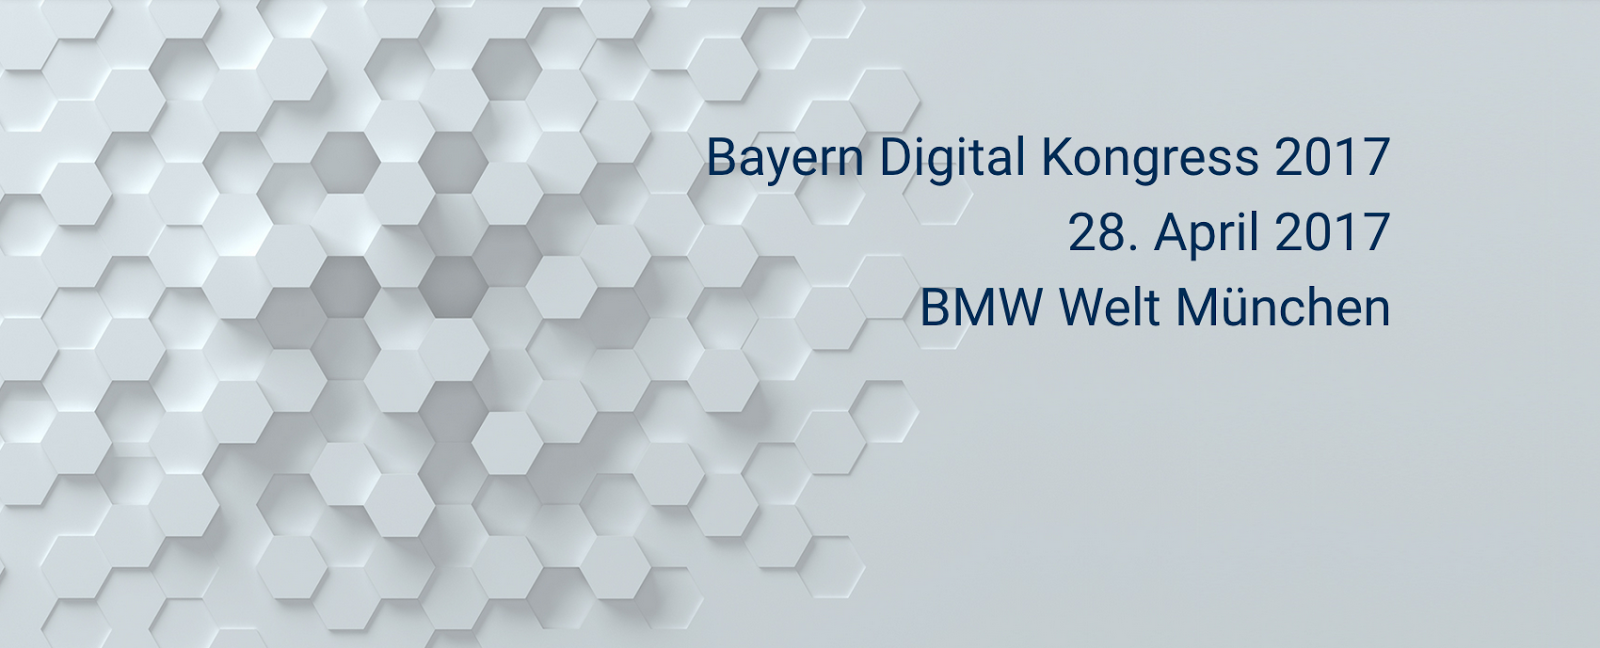 Bayern Digital Kongress 2017